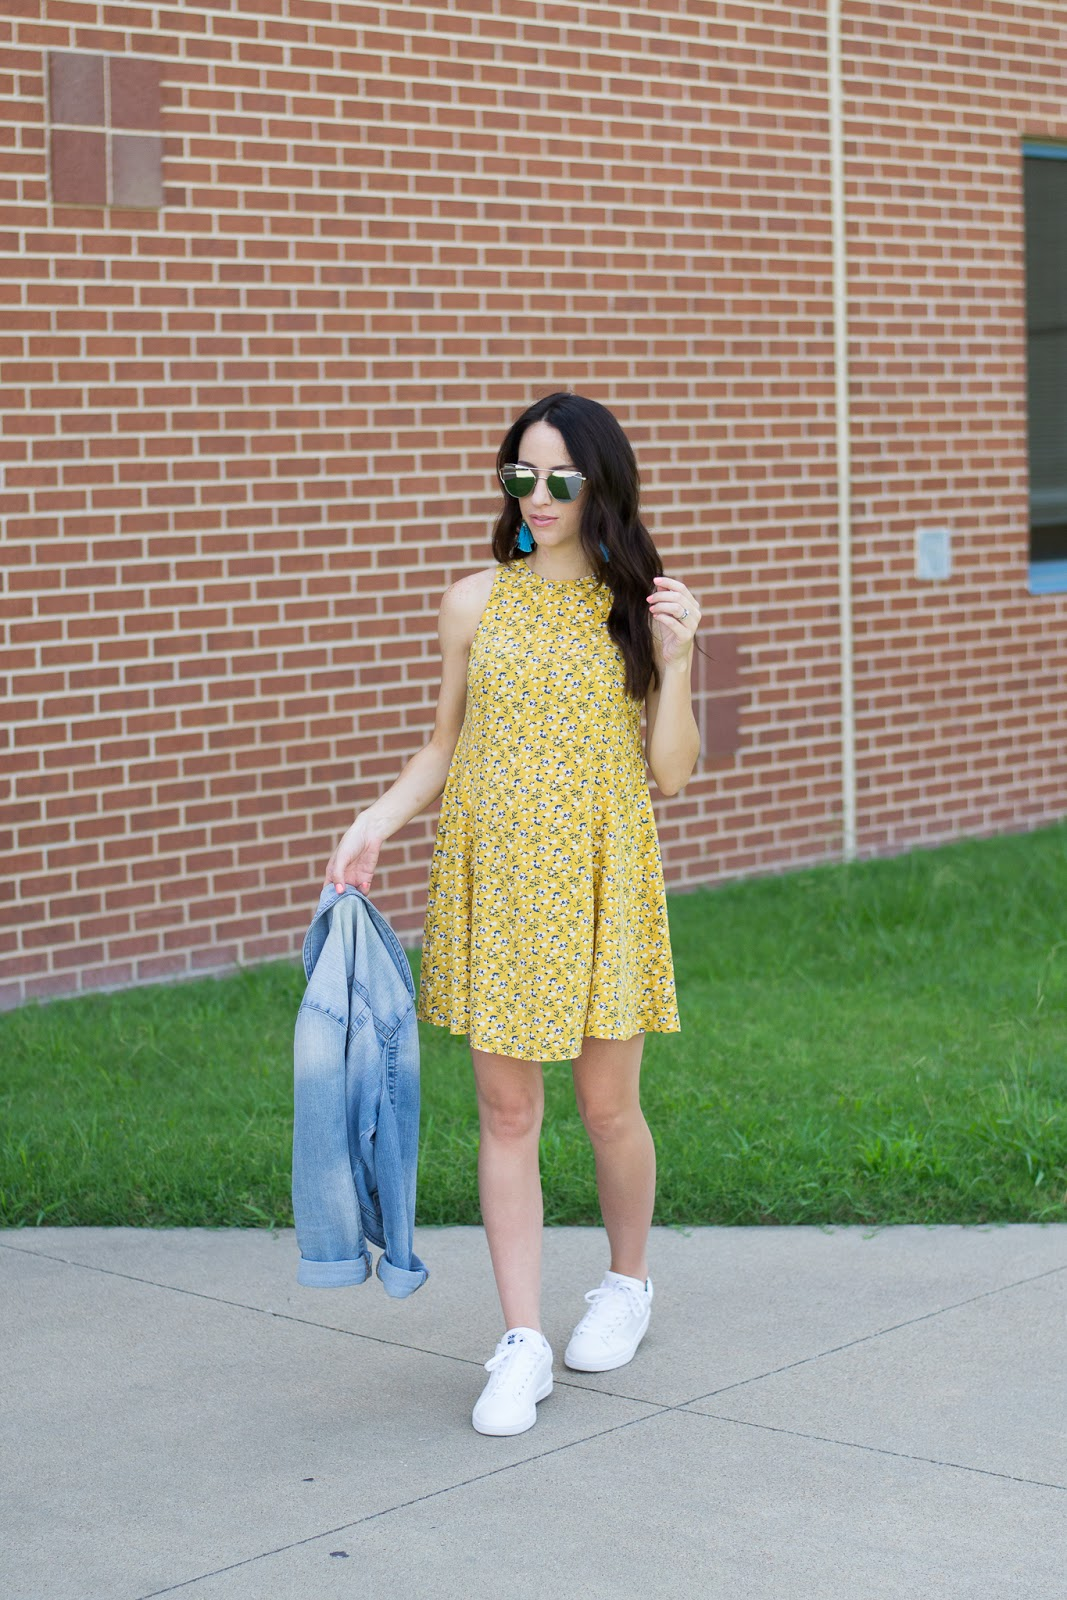 Summer Shift Dress with denim jacket and sneakers